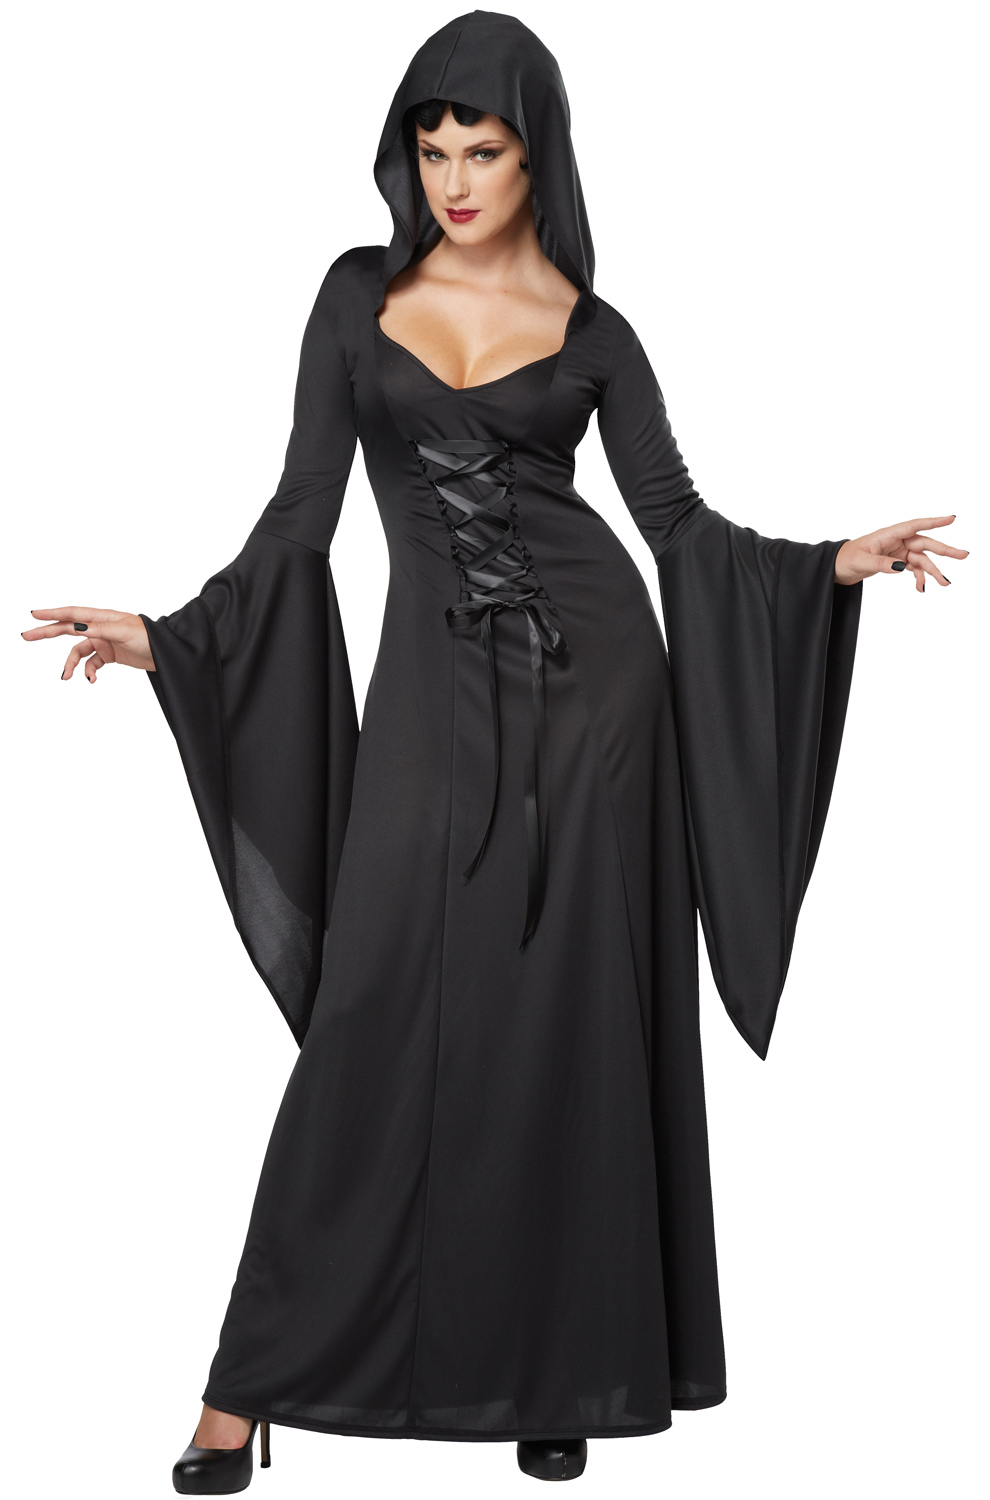 deluxe hooded robe vampire adult costume black. Black Bedroom Furniture Sets. Home Design Ideas